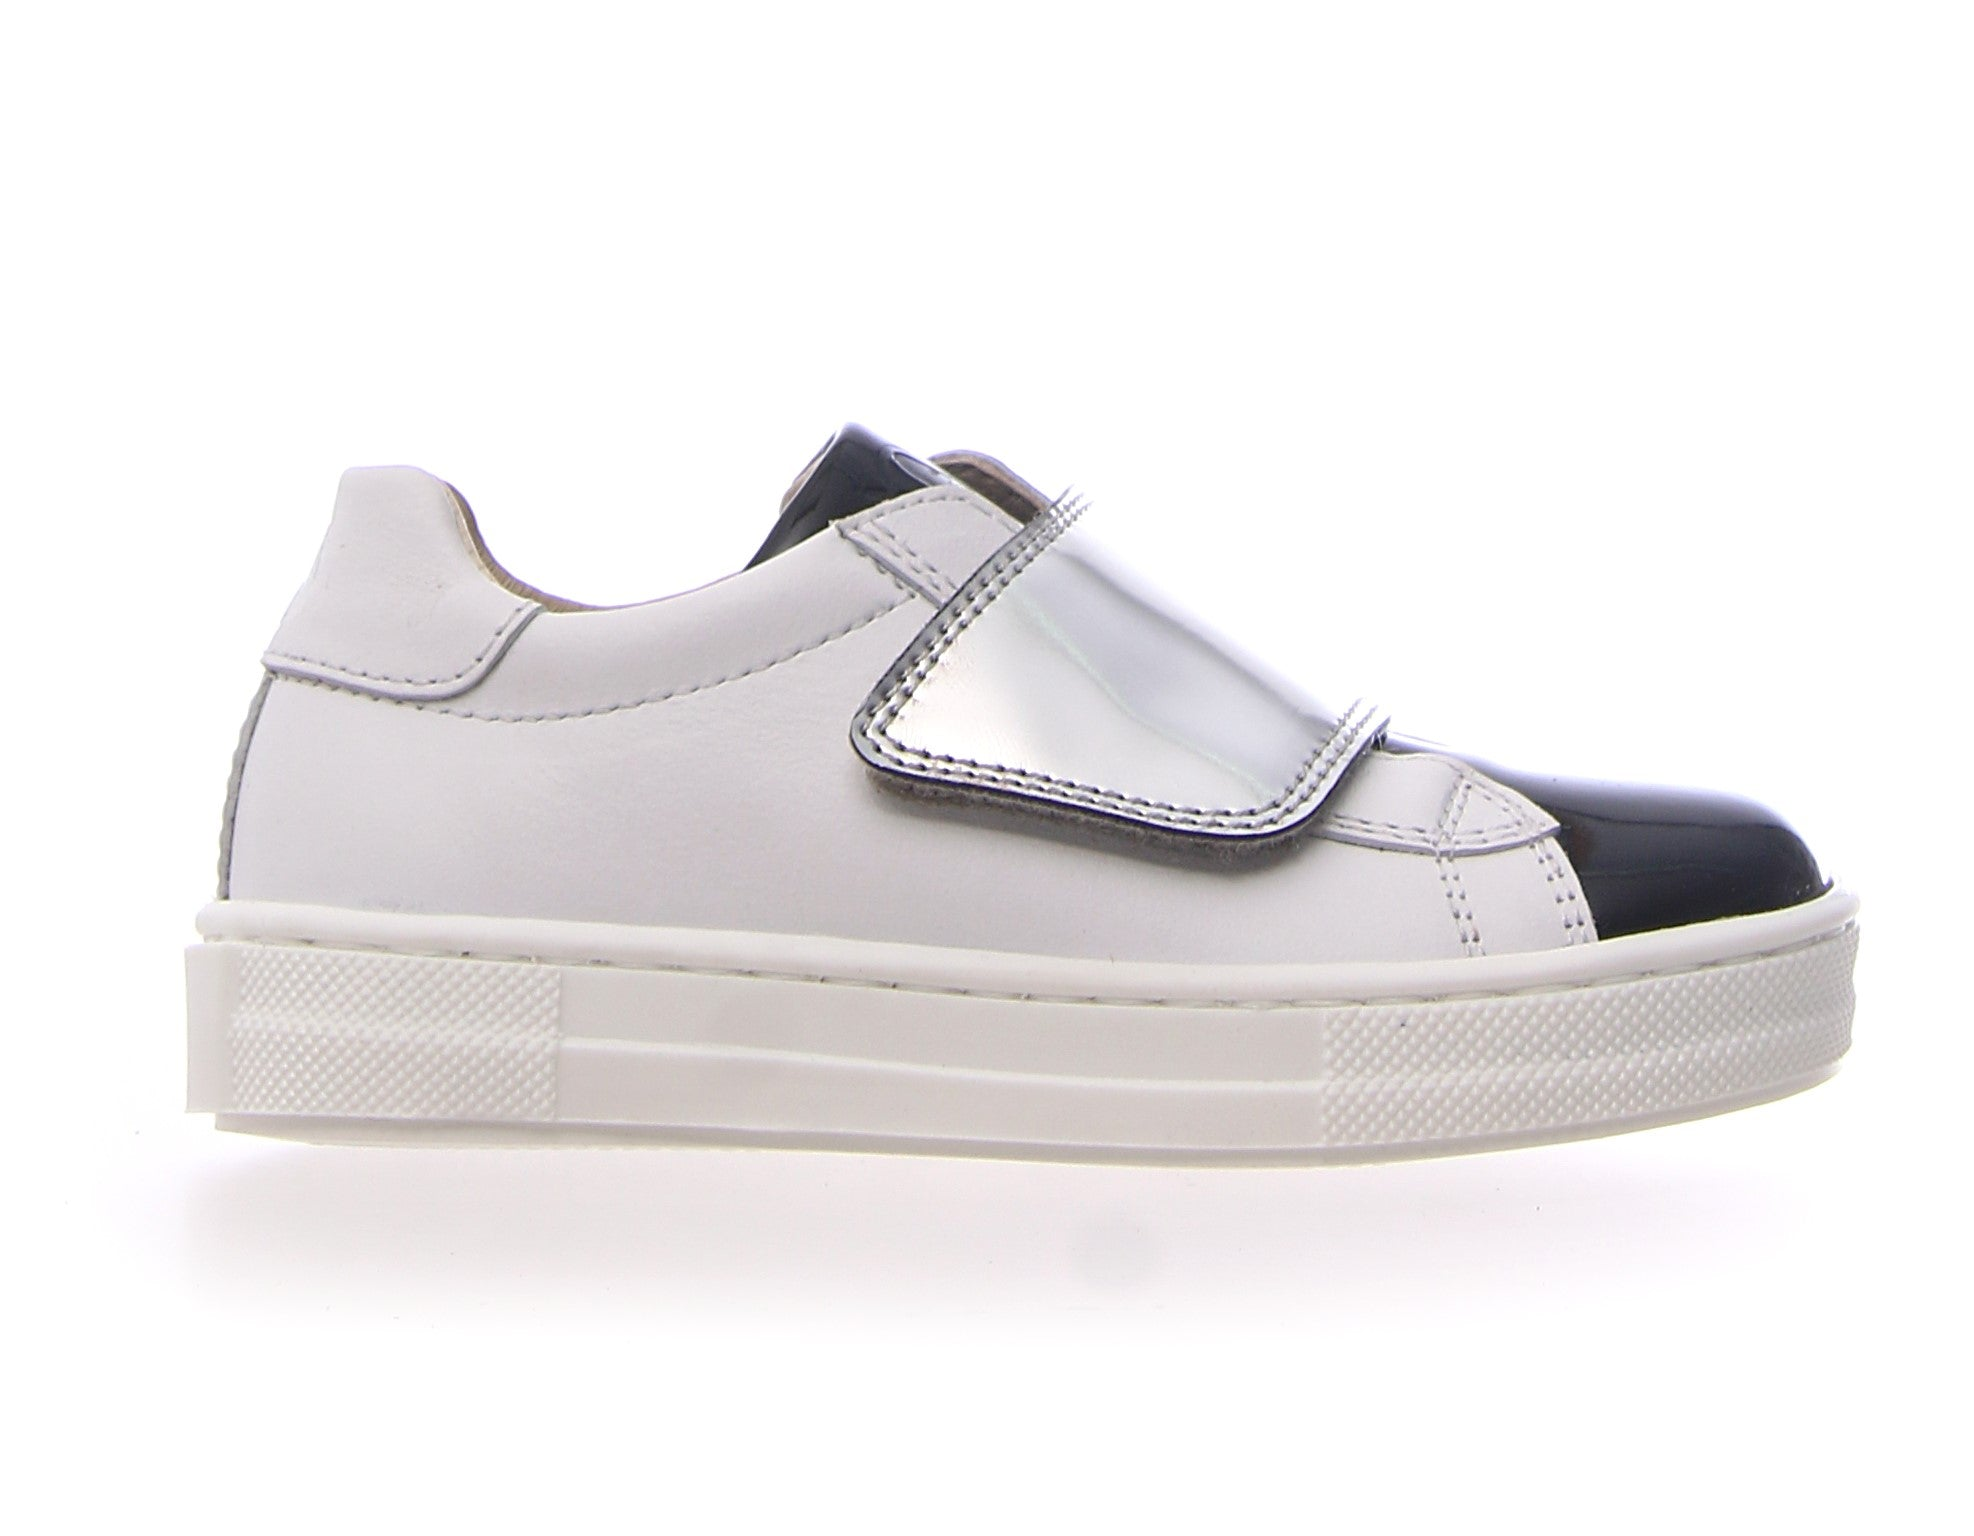 Naturino White and Black Sneaker with Silver Strap